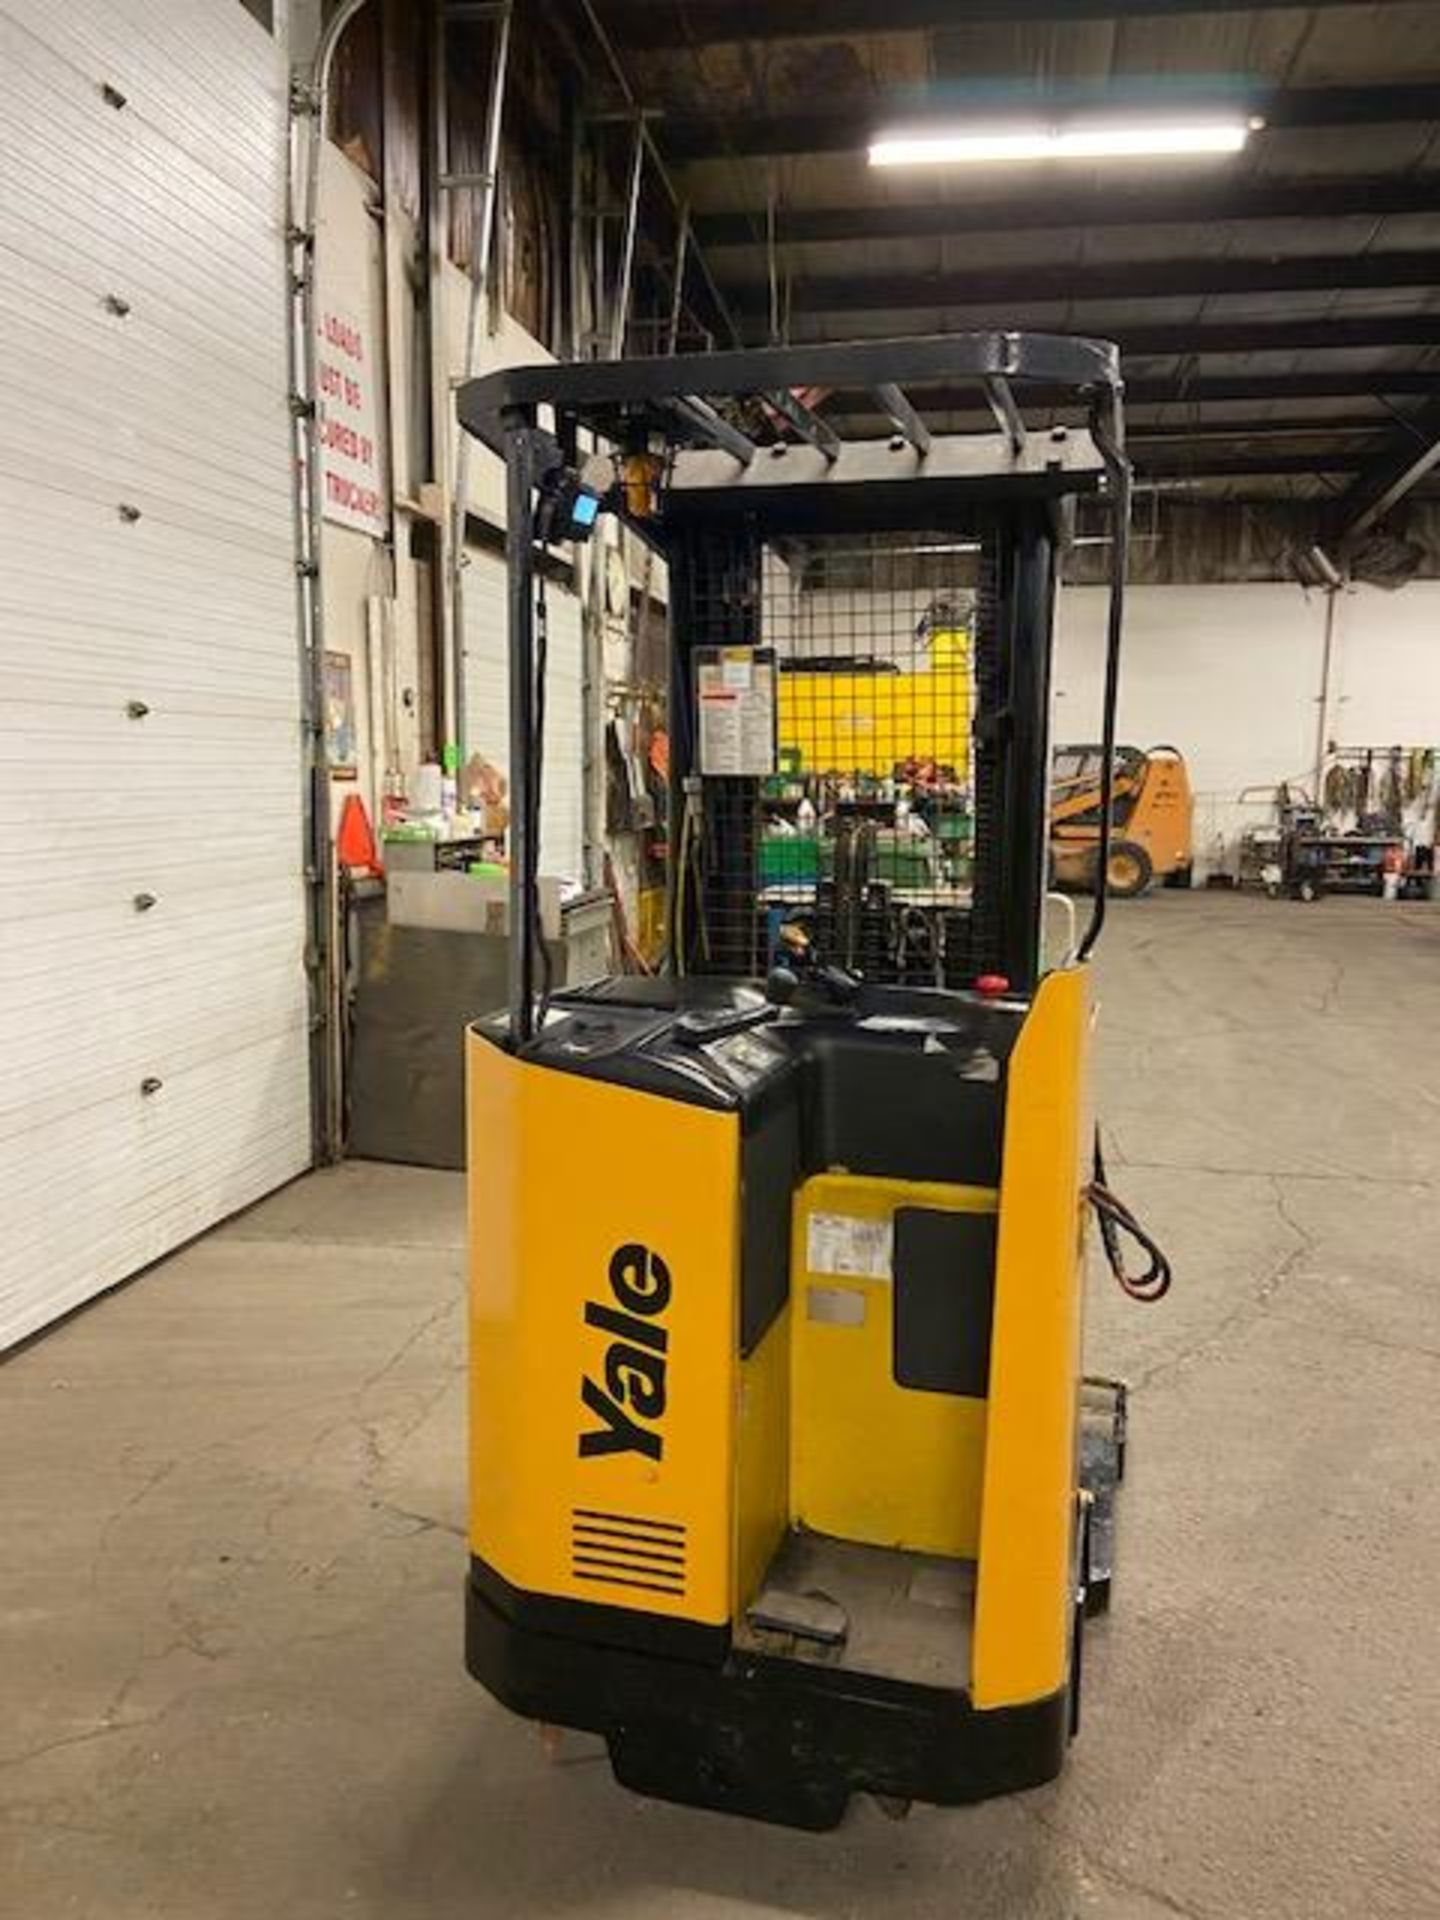 FREE CUSTOMS - Yale Reach Truck Pallet Lifter REACH TRUCK electric 4000lbswith sideshift 3stage mast - Image 3 of 3